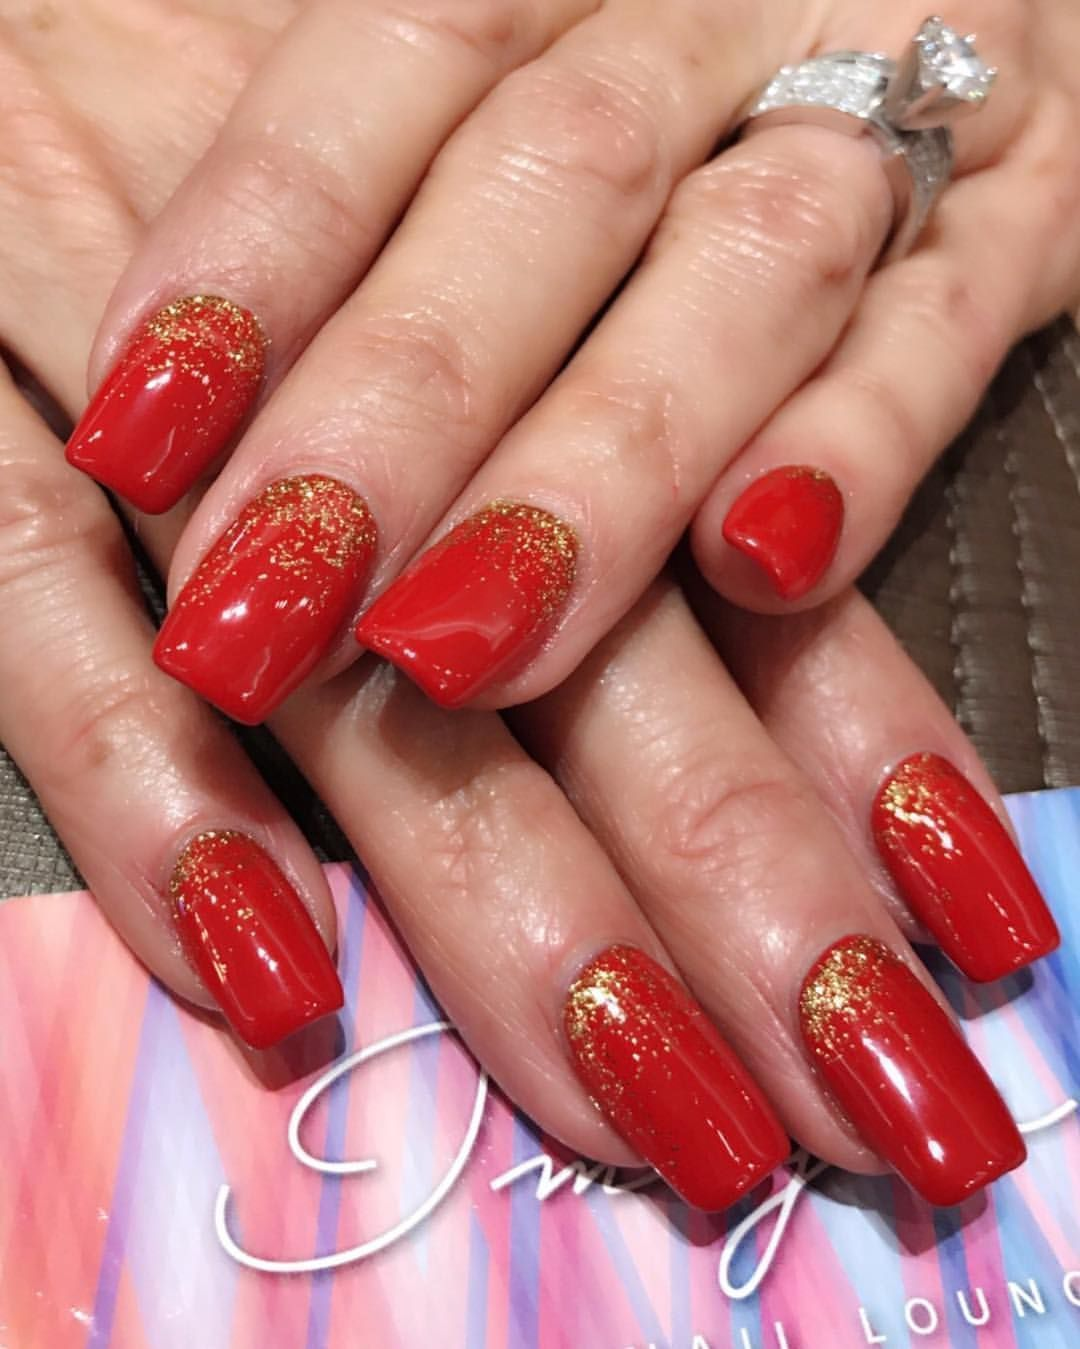 Get your nails ready for Valentine's Day! Next week is the last week to take advantage of free gel offer. Visit our website for more details. #nails #nailart #nailsalon #fashion #nailswag #rednails #valentinesday #valentinesdaynails